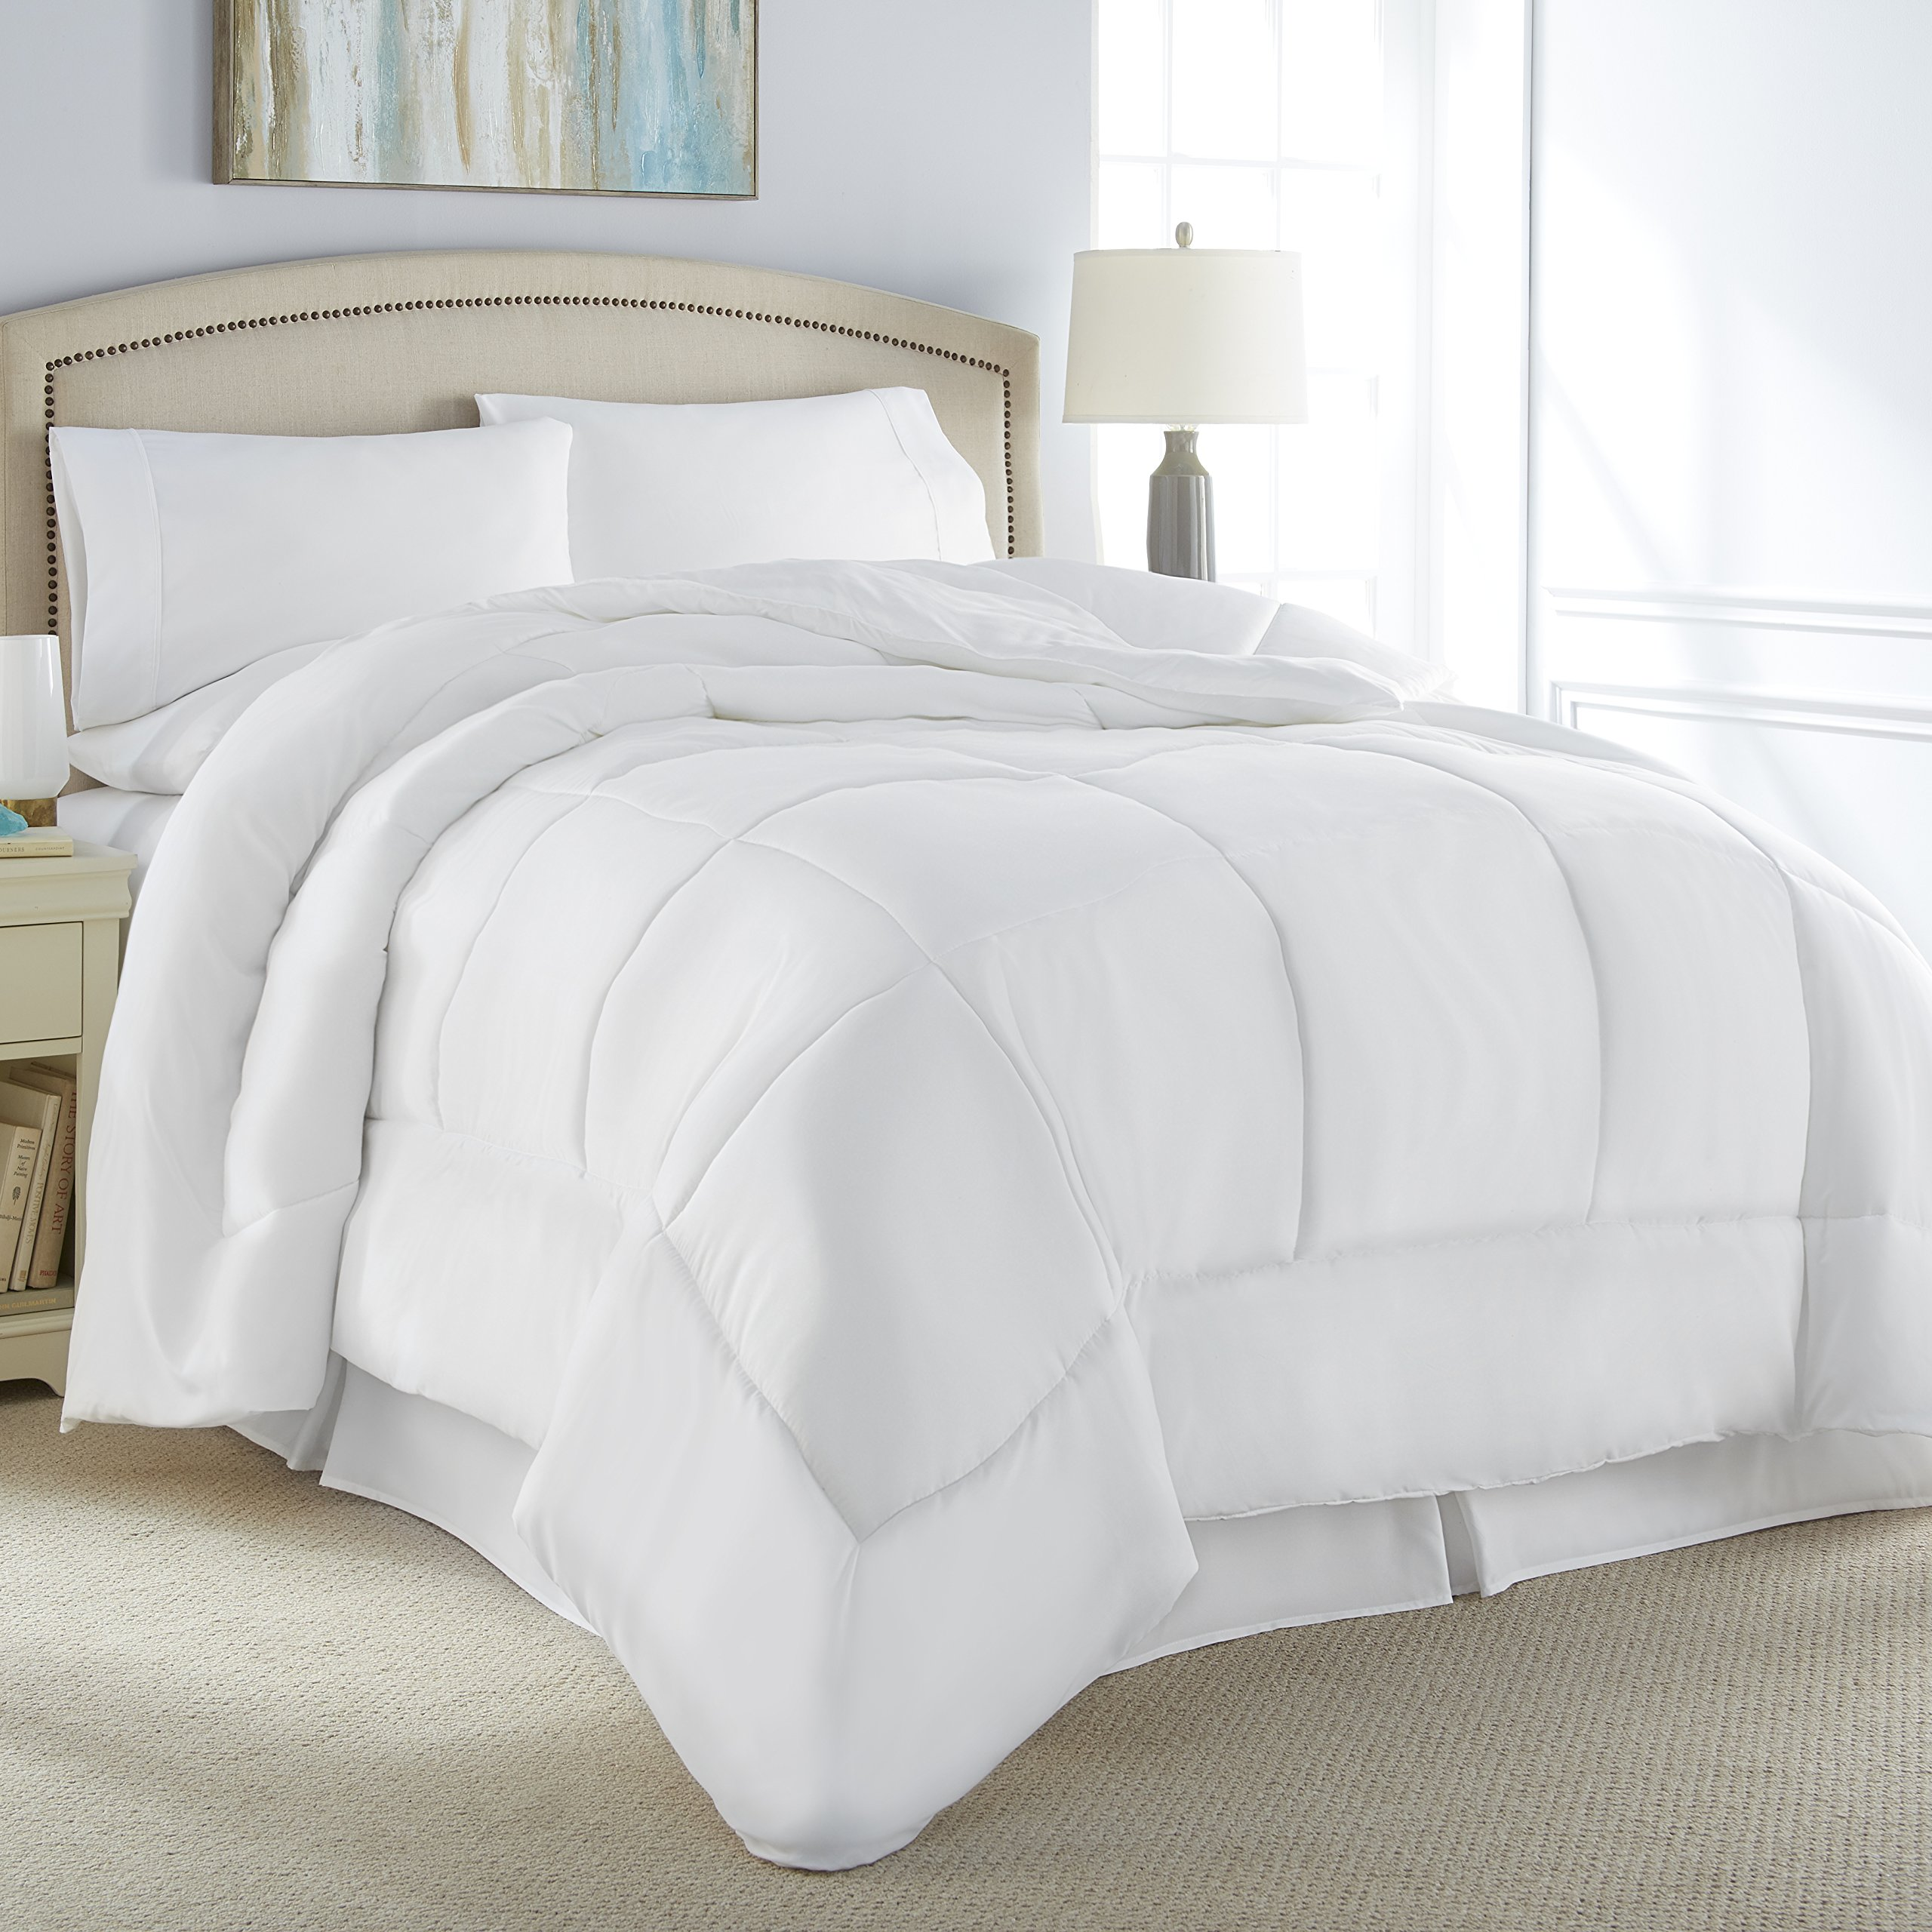 Danjor Linens Luxury Soft All Season White Down Alternative Comforter- Hypoallergenic, Box Stitched- Plush Microfiber fill, Machine Washable, Duvet Insert Queen Size by Danjor Linens (Image #1)